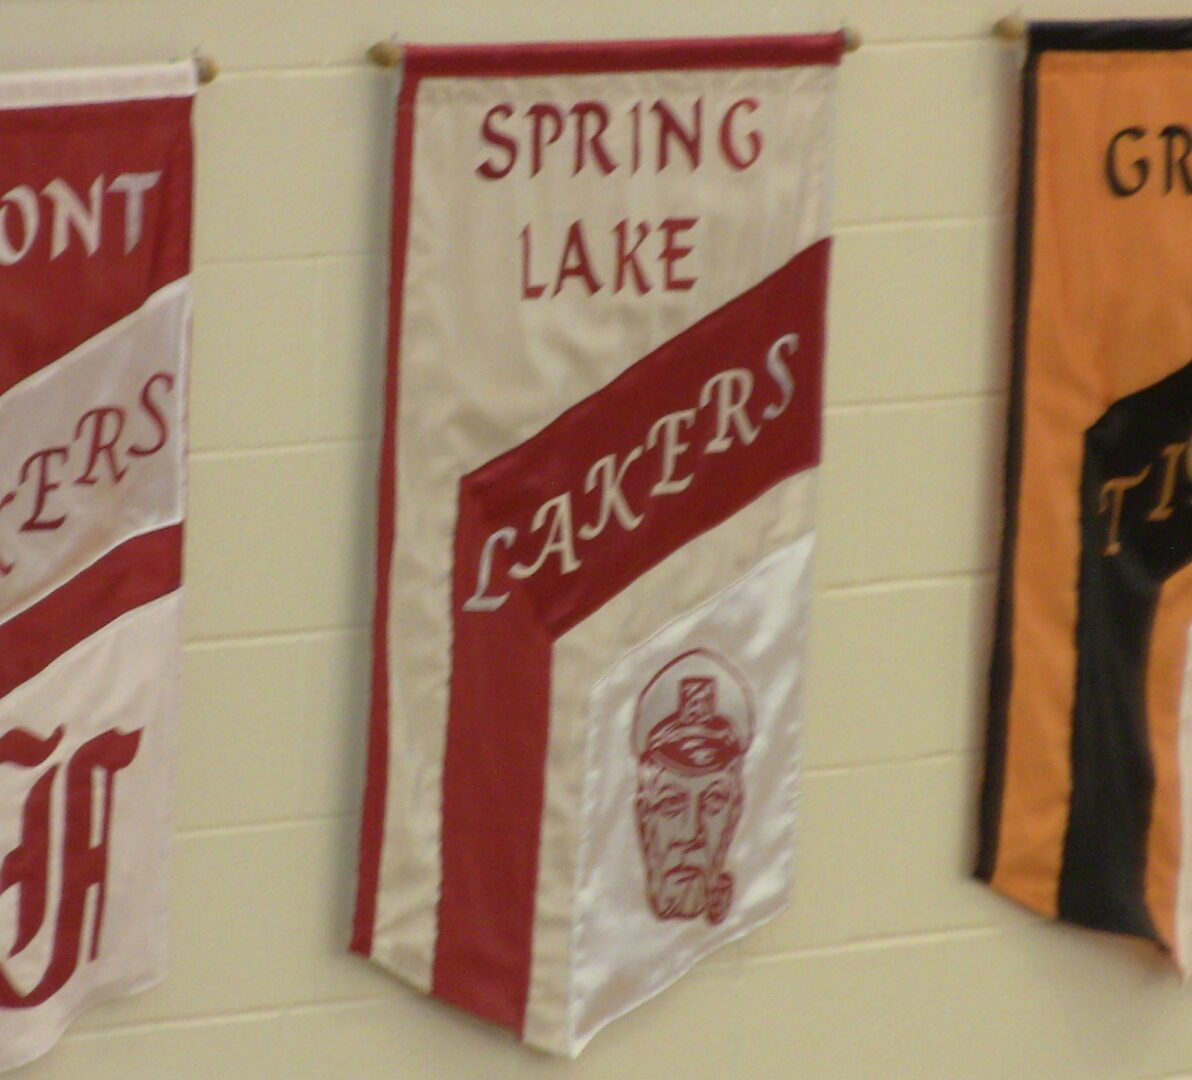 Highlights from Spring Lake's boys basketball district championship [VIDEOS]